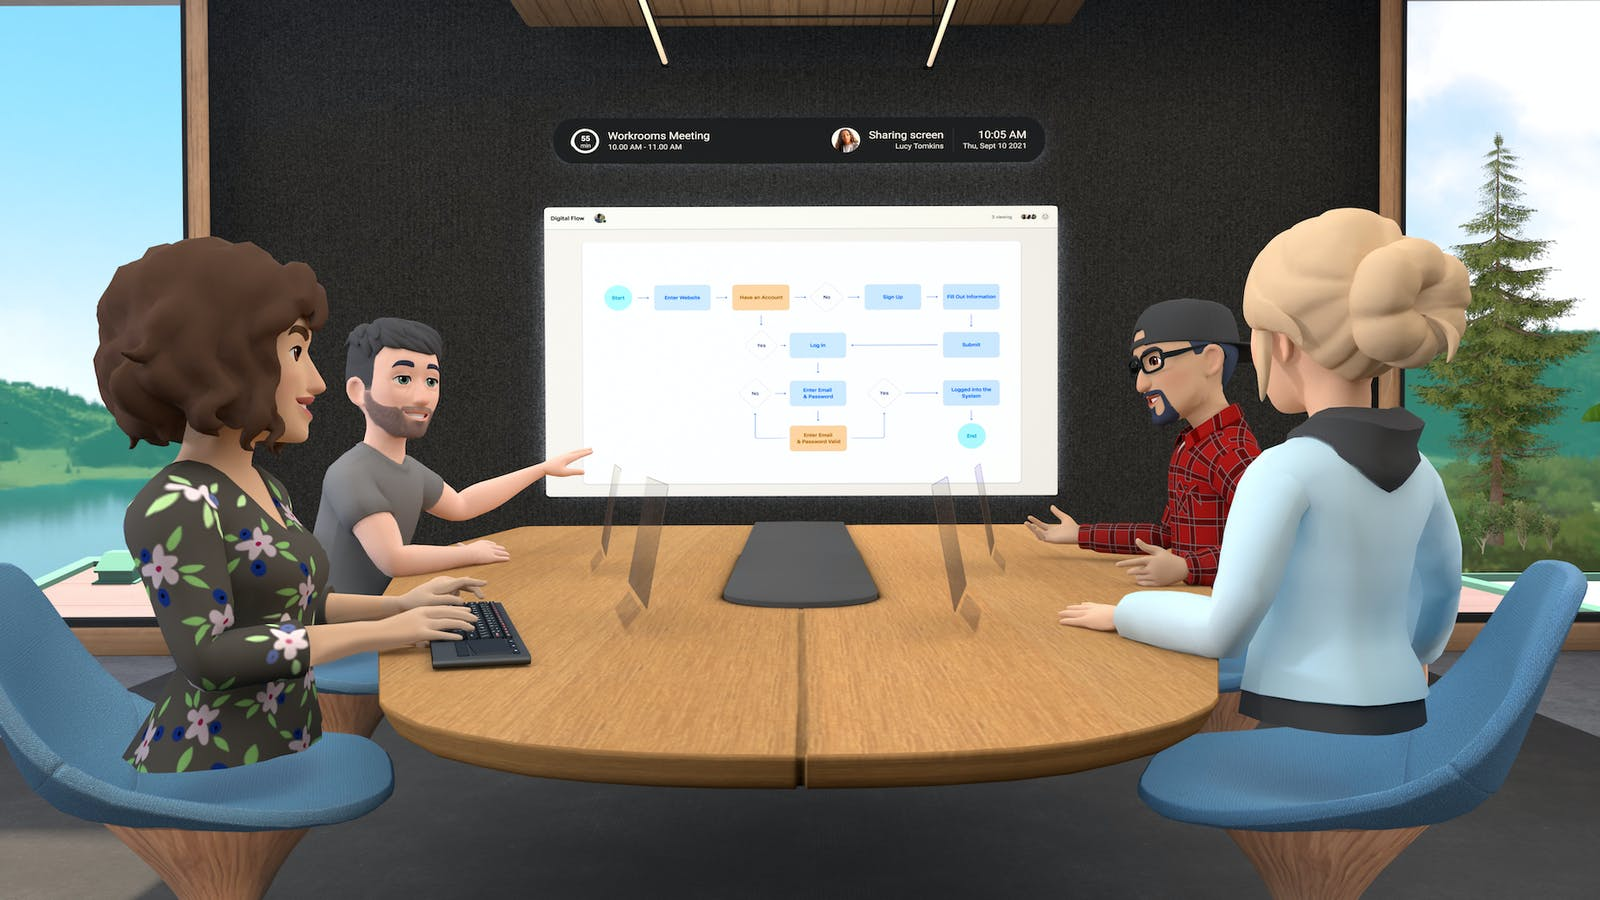 Avatars holding a meeting in Horizon Workrooms. Credit: Facebook